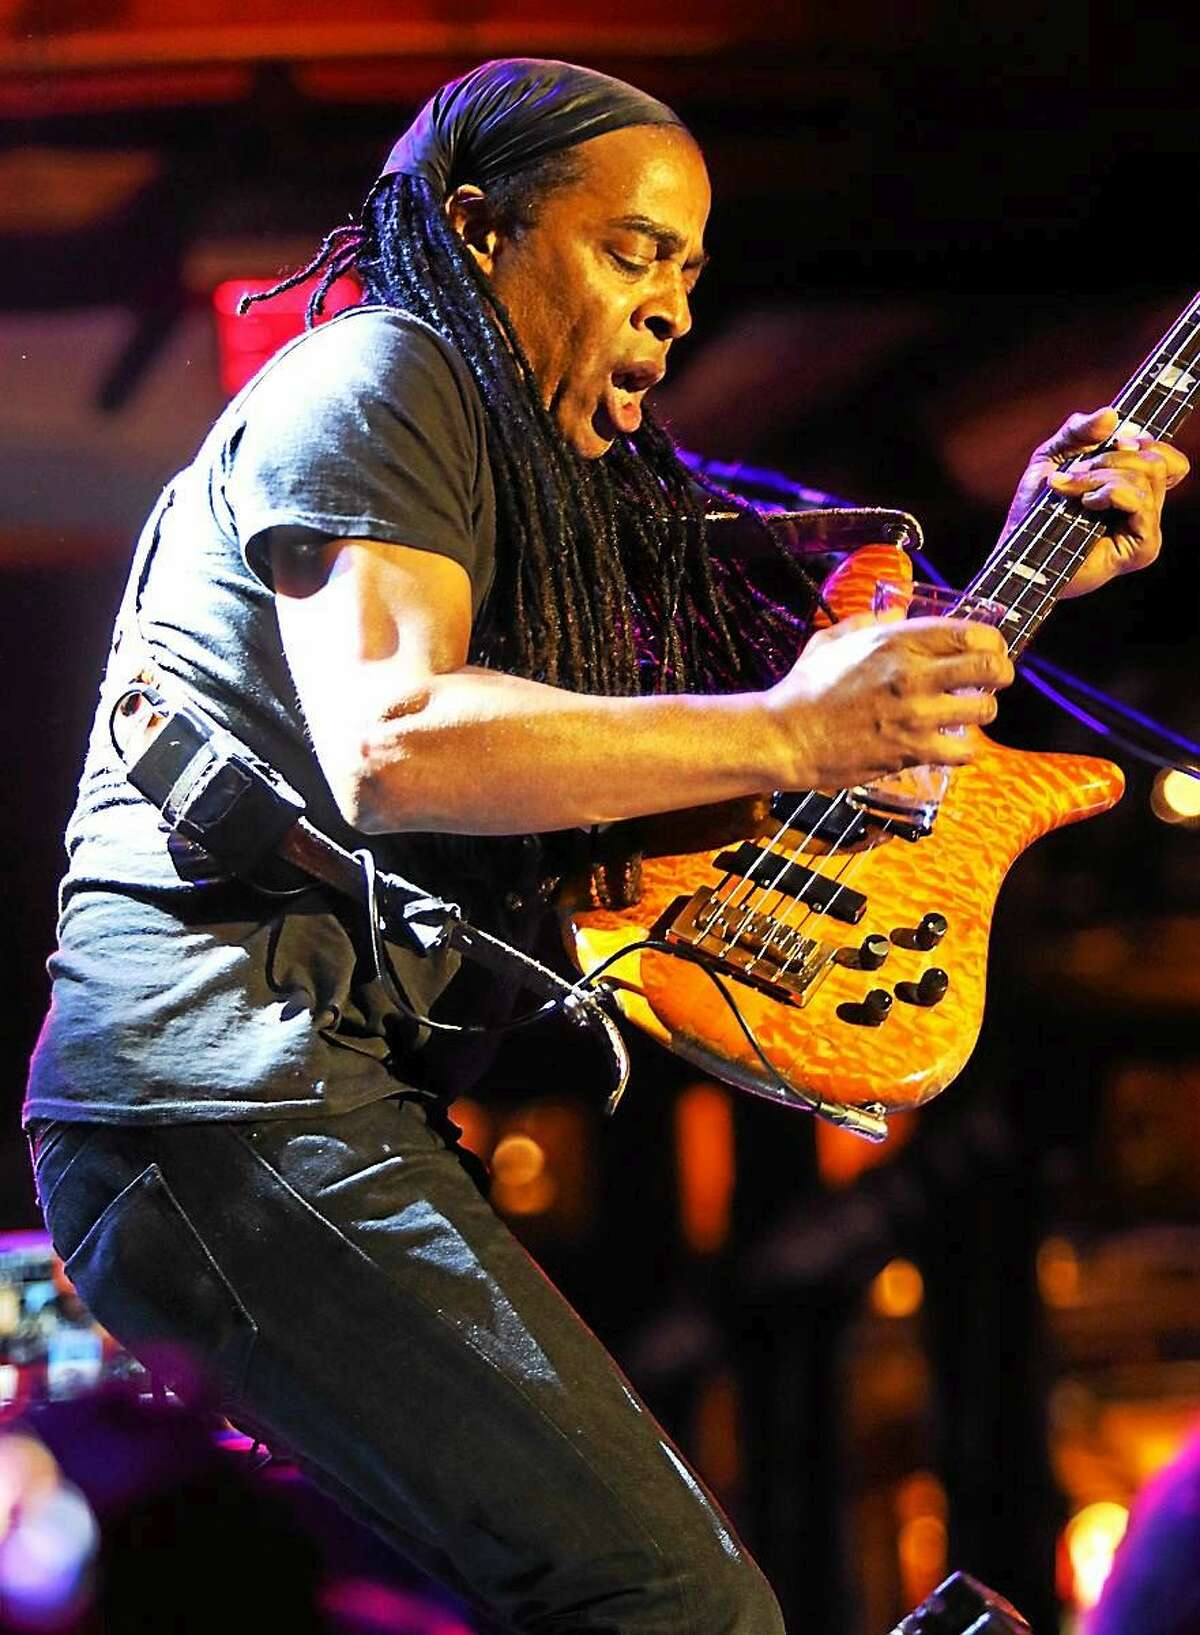 Photo by John Atashian Living Colour bassist Doug Wimbish, a Bloomfield native, is shown soloing on stage at the Wolf Den Lounge during the bands concert performance at the Mohegan Sun Casino in Uncasville on Friday July 3. The hard rock band from New York City are on a U.S. tour in support of their brand new CD, ìShade.î